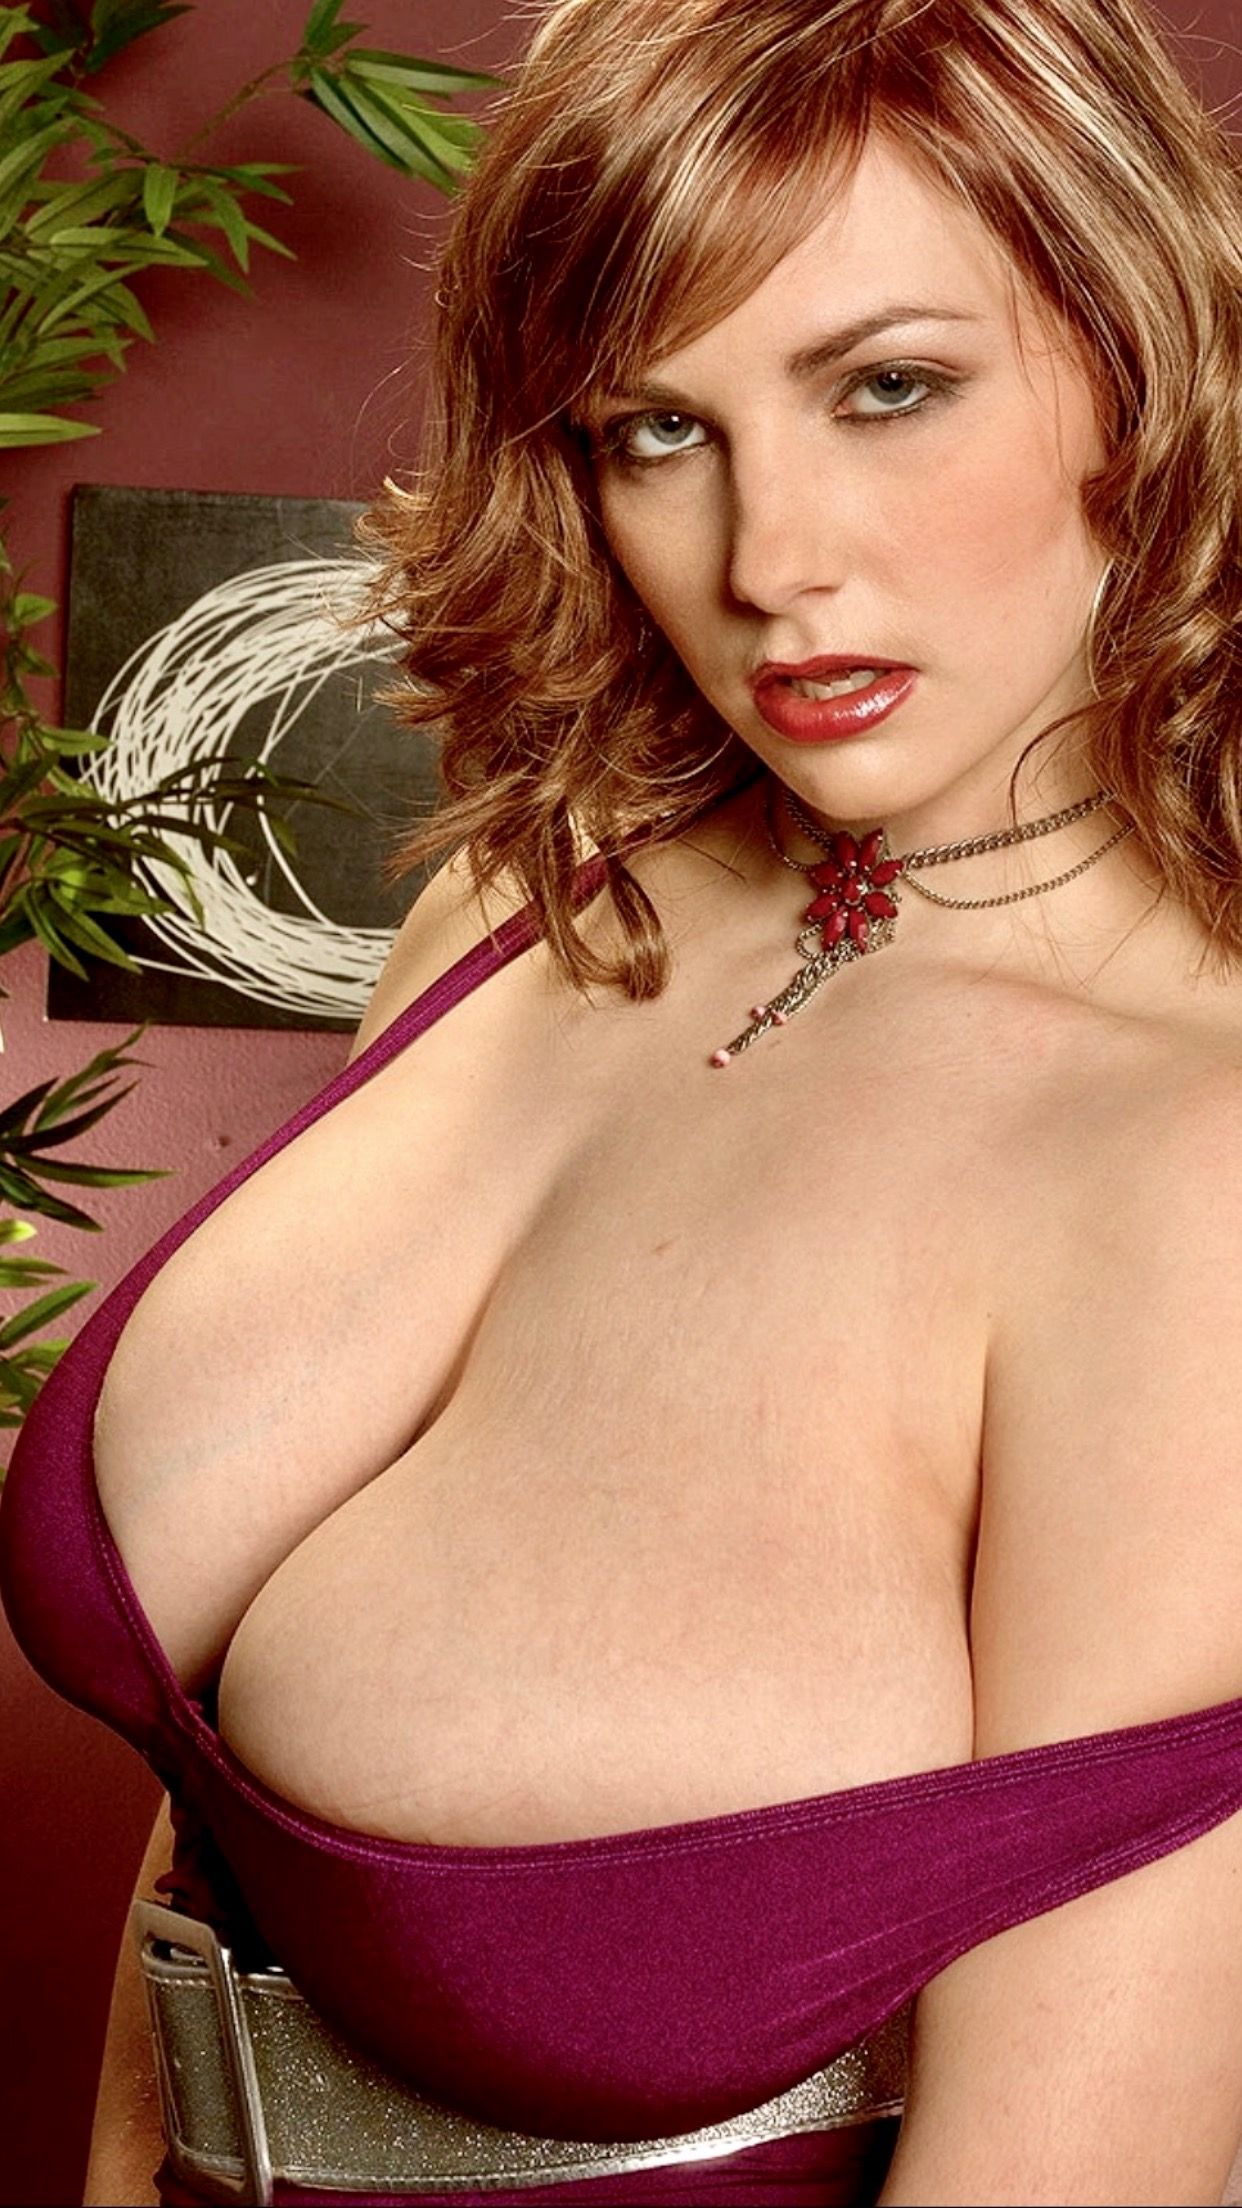 Boobs Ann Christy nudes (82 fotos) Sideboobs, YouTube, cameltoe